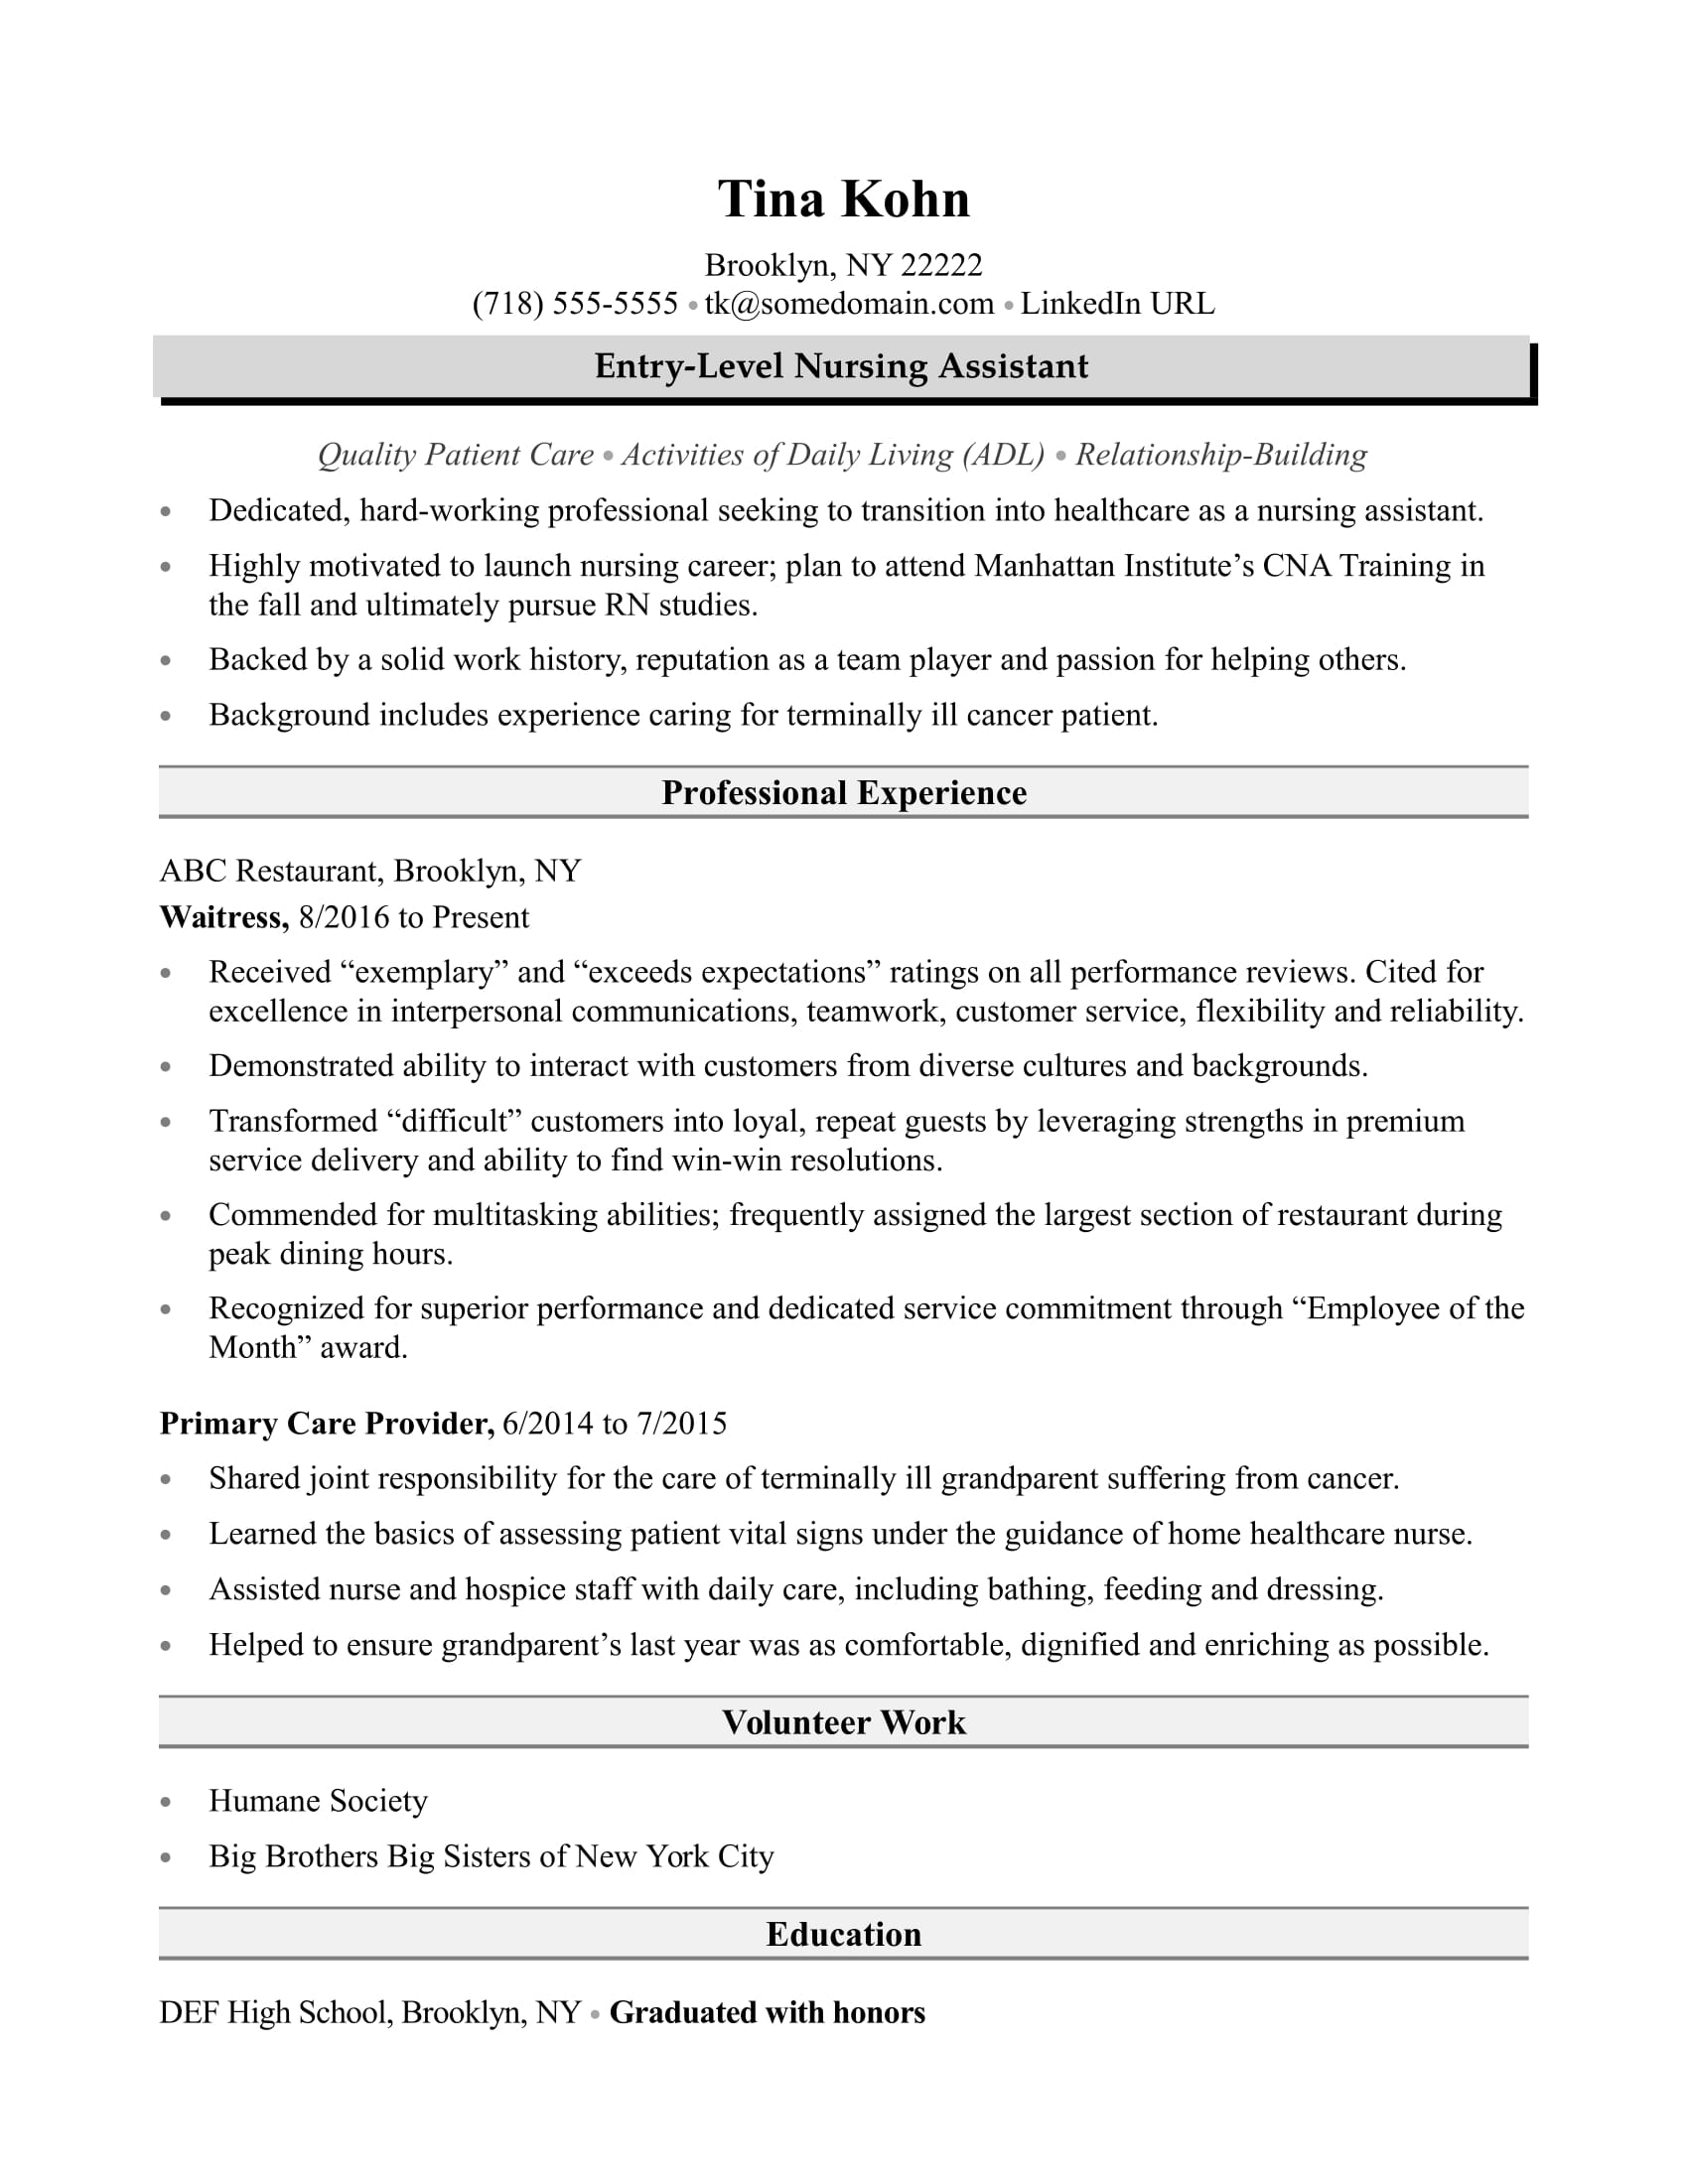 nursing assistant resume sample